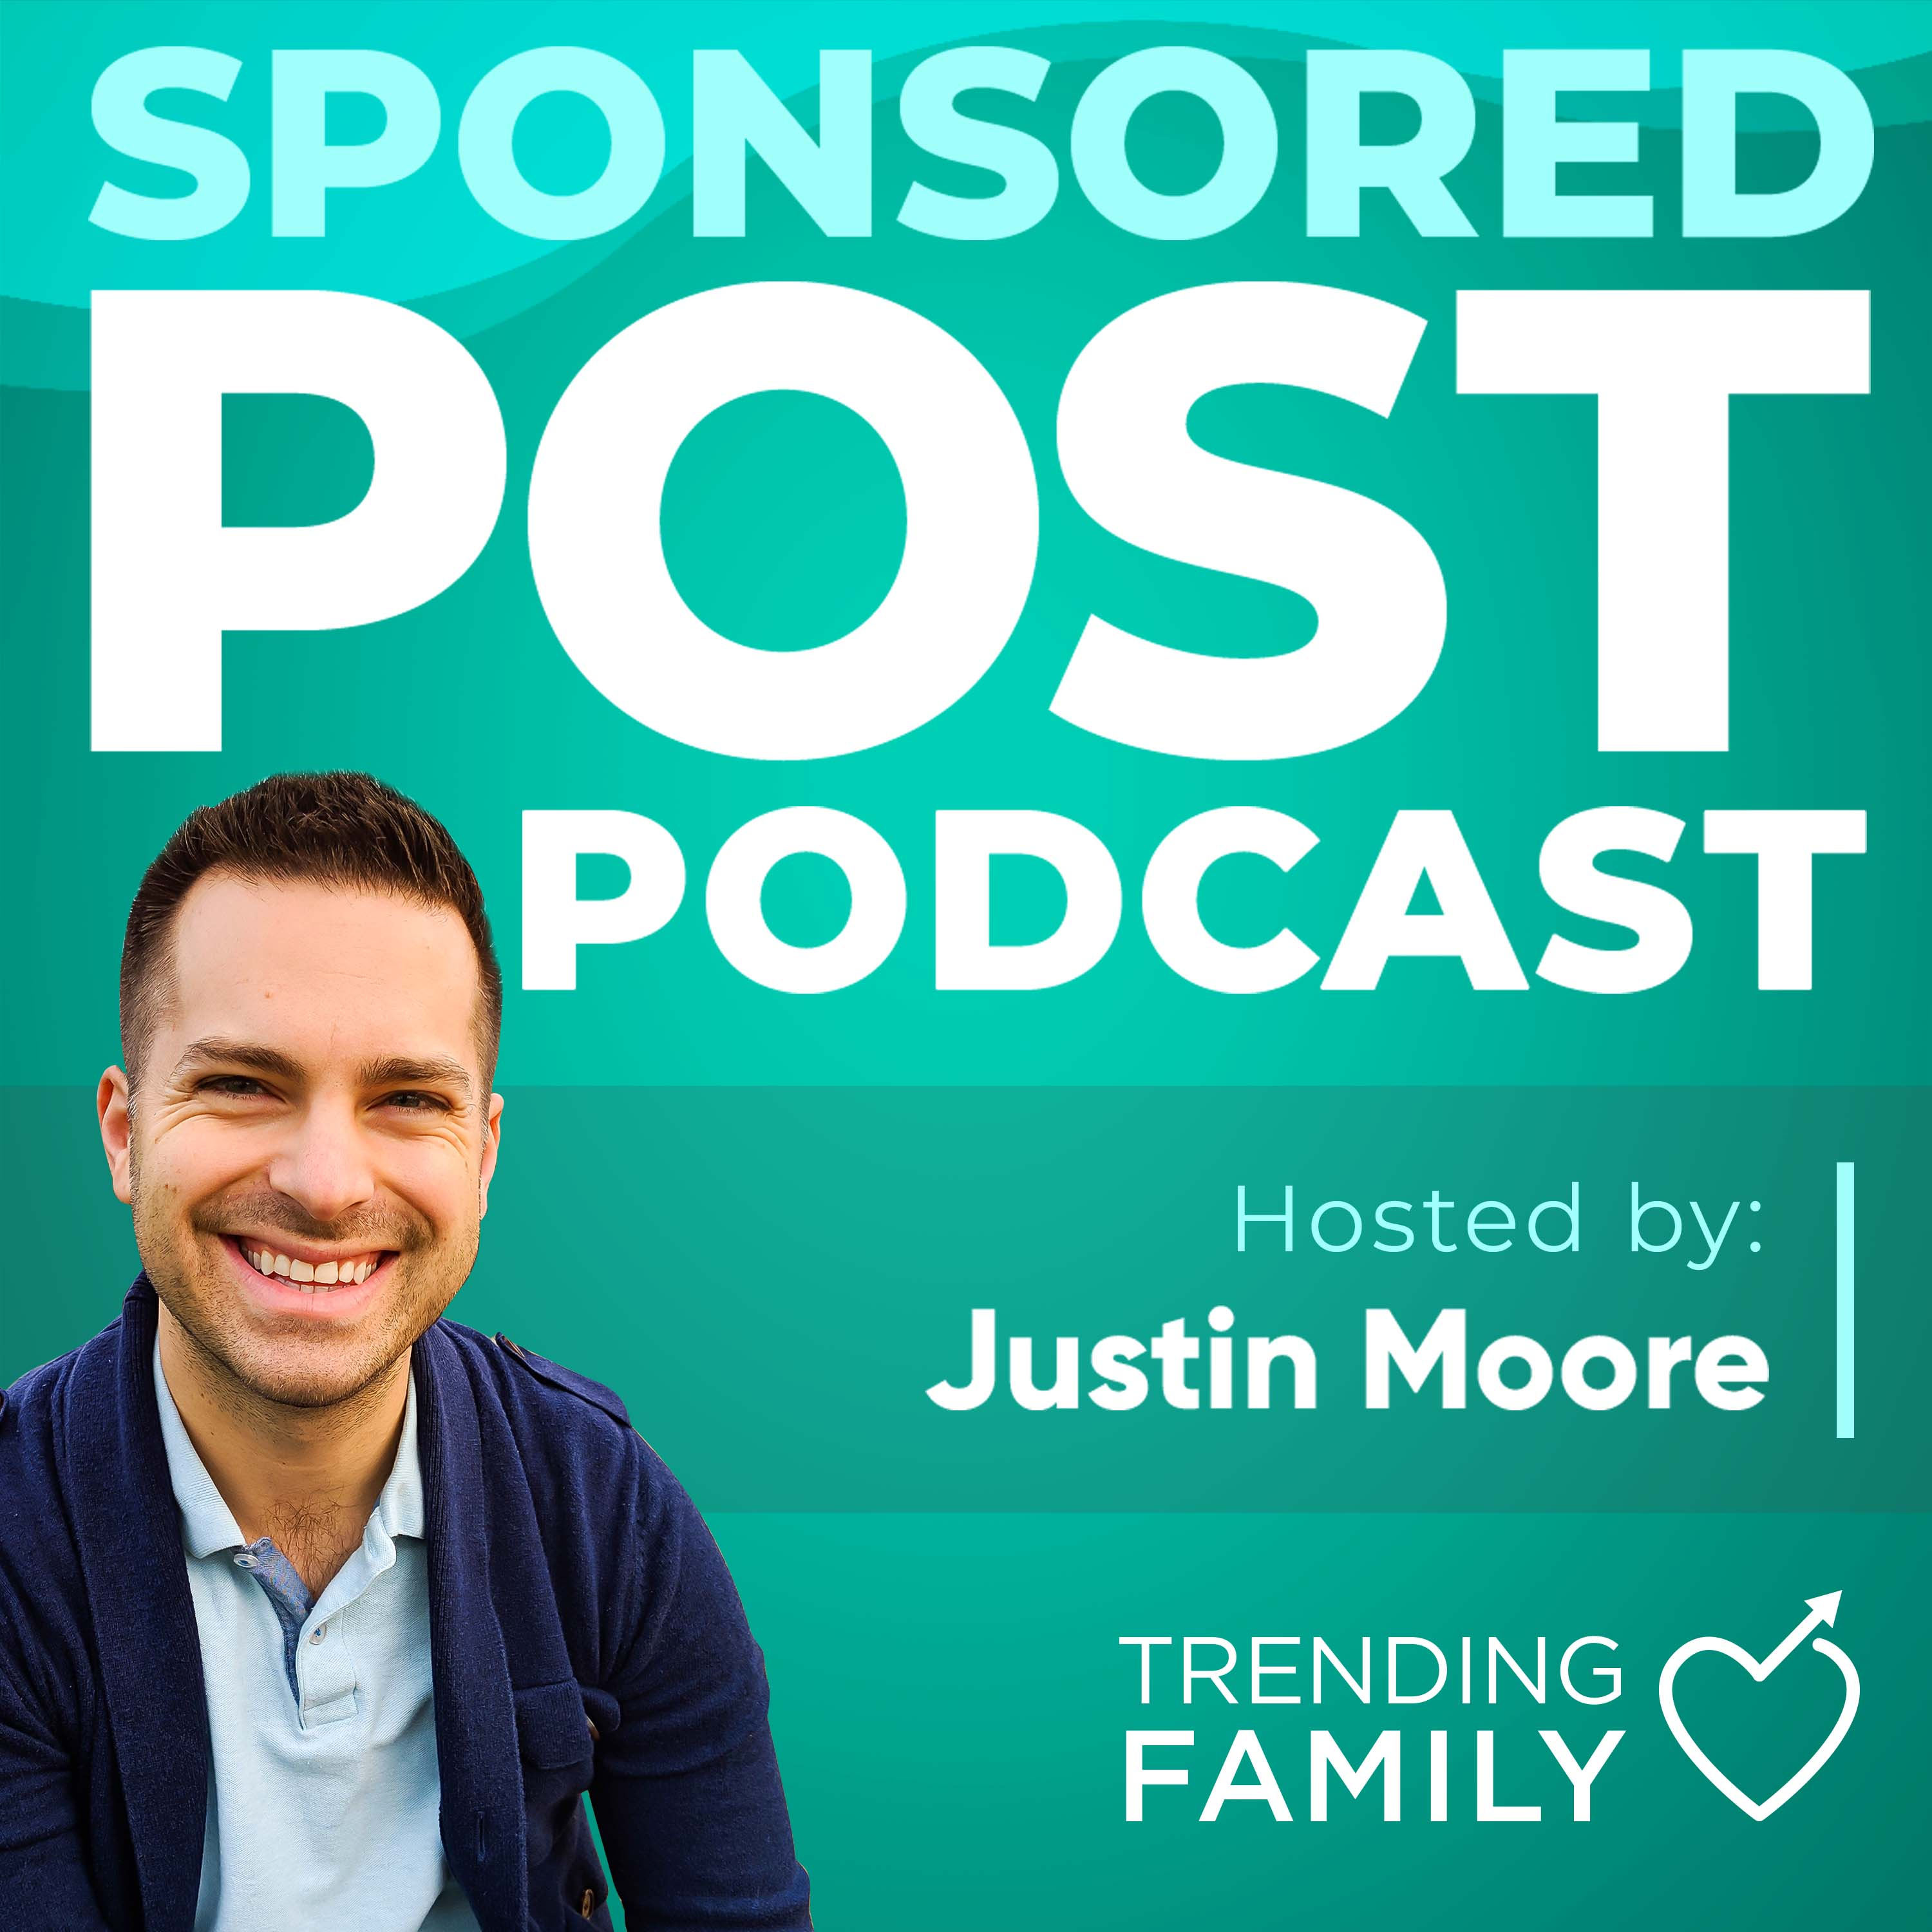 How Much Should I Charge for Brand Deals and Sponsorships? - Sponsored Post Podcast S3E1